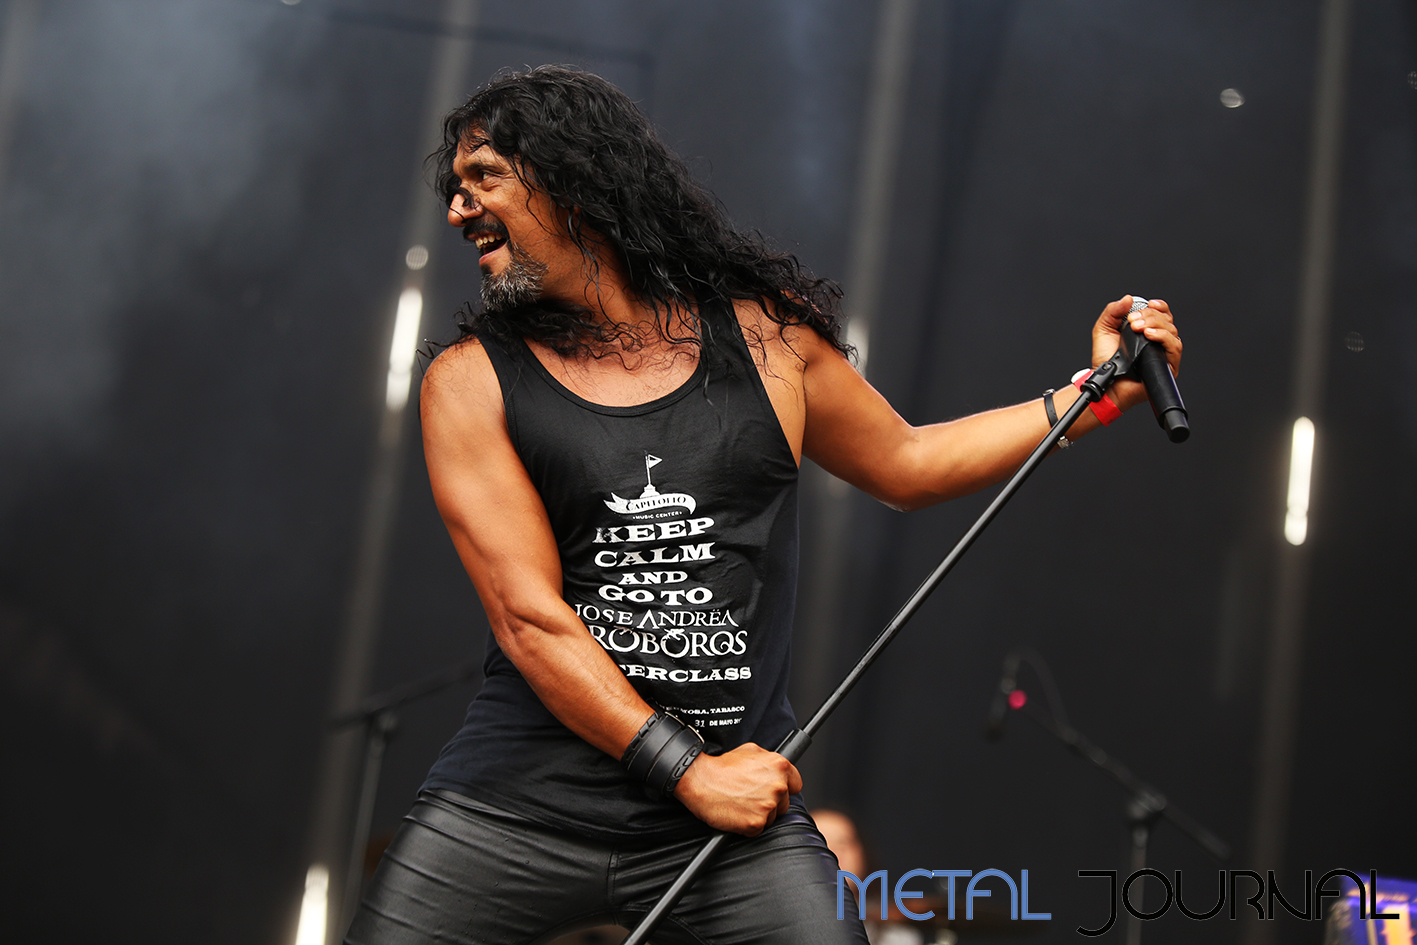 jose andrea uroboros - leyendas del rock 2019 metal journal pic 1